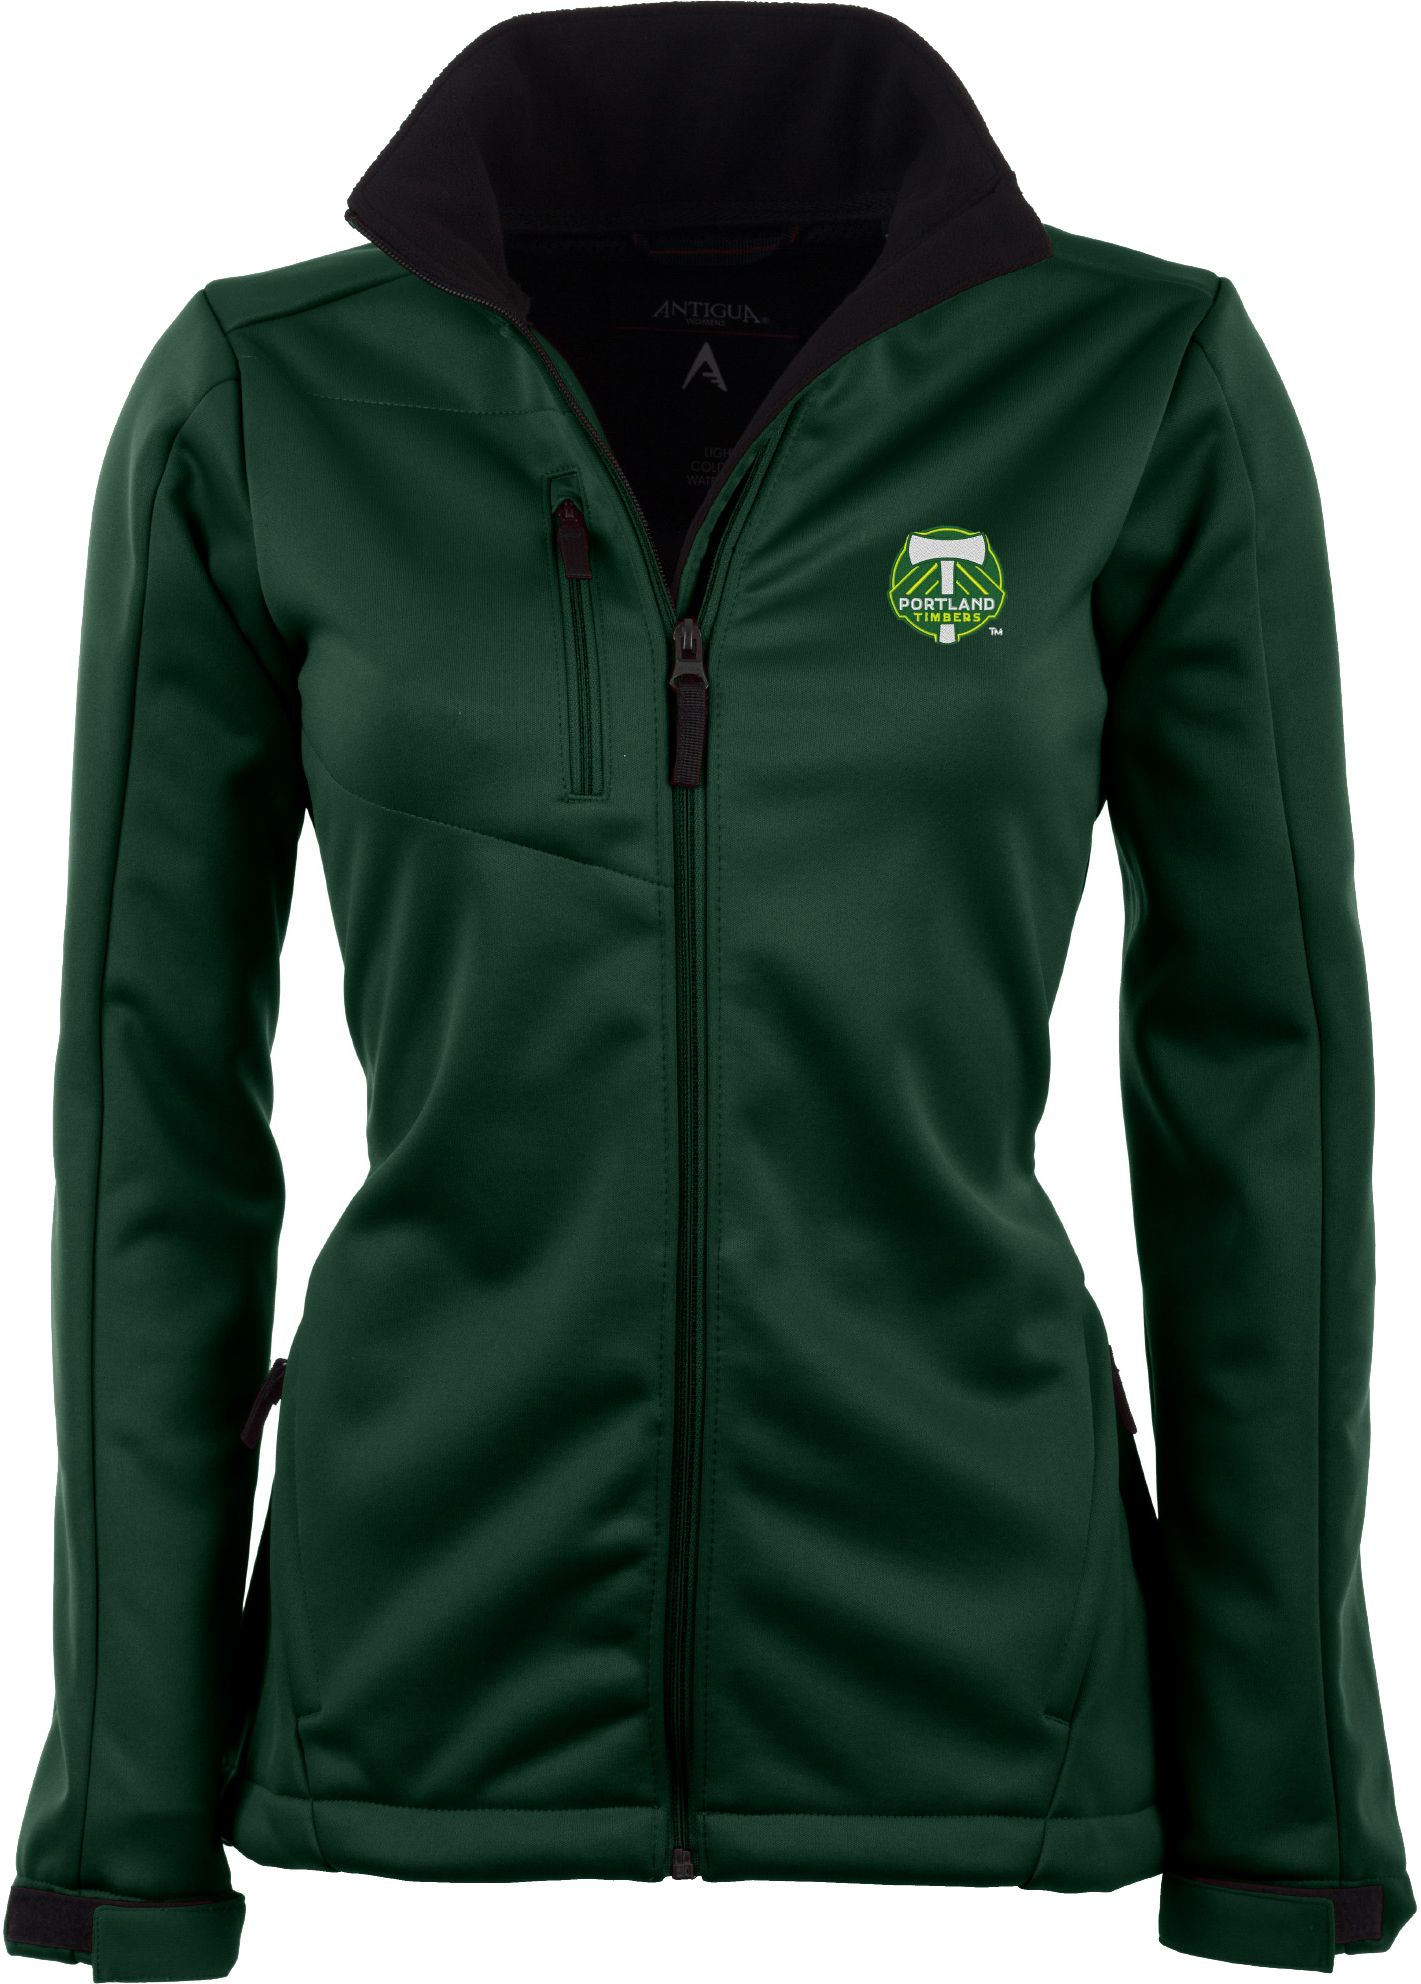 Antigua Women's Portland Timbers Traverse Hunter Green Soft-Shell Full-Zip Jacket, Size: Small, Team thumbnail